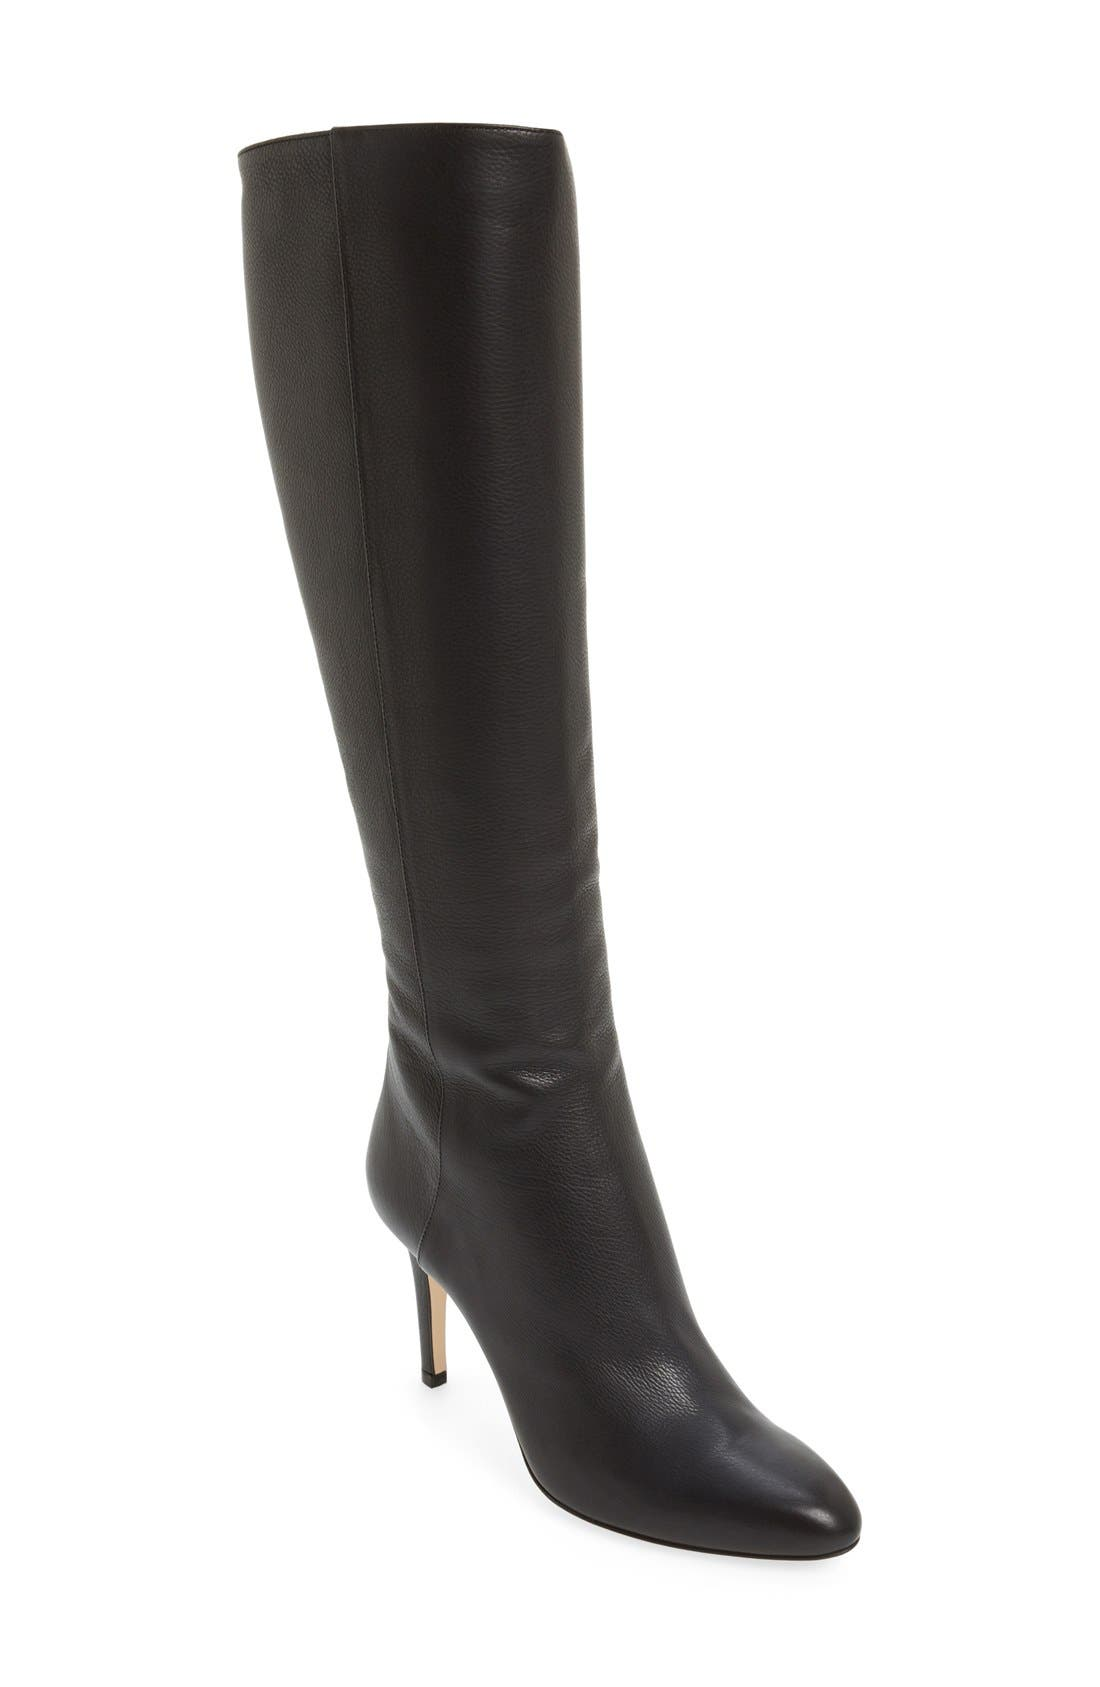 Main Image - Jimmy Choo 'Grand' Tall Boot